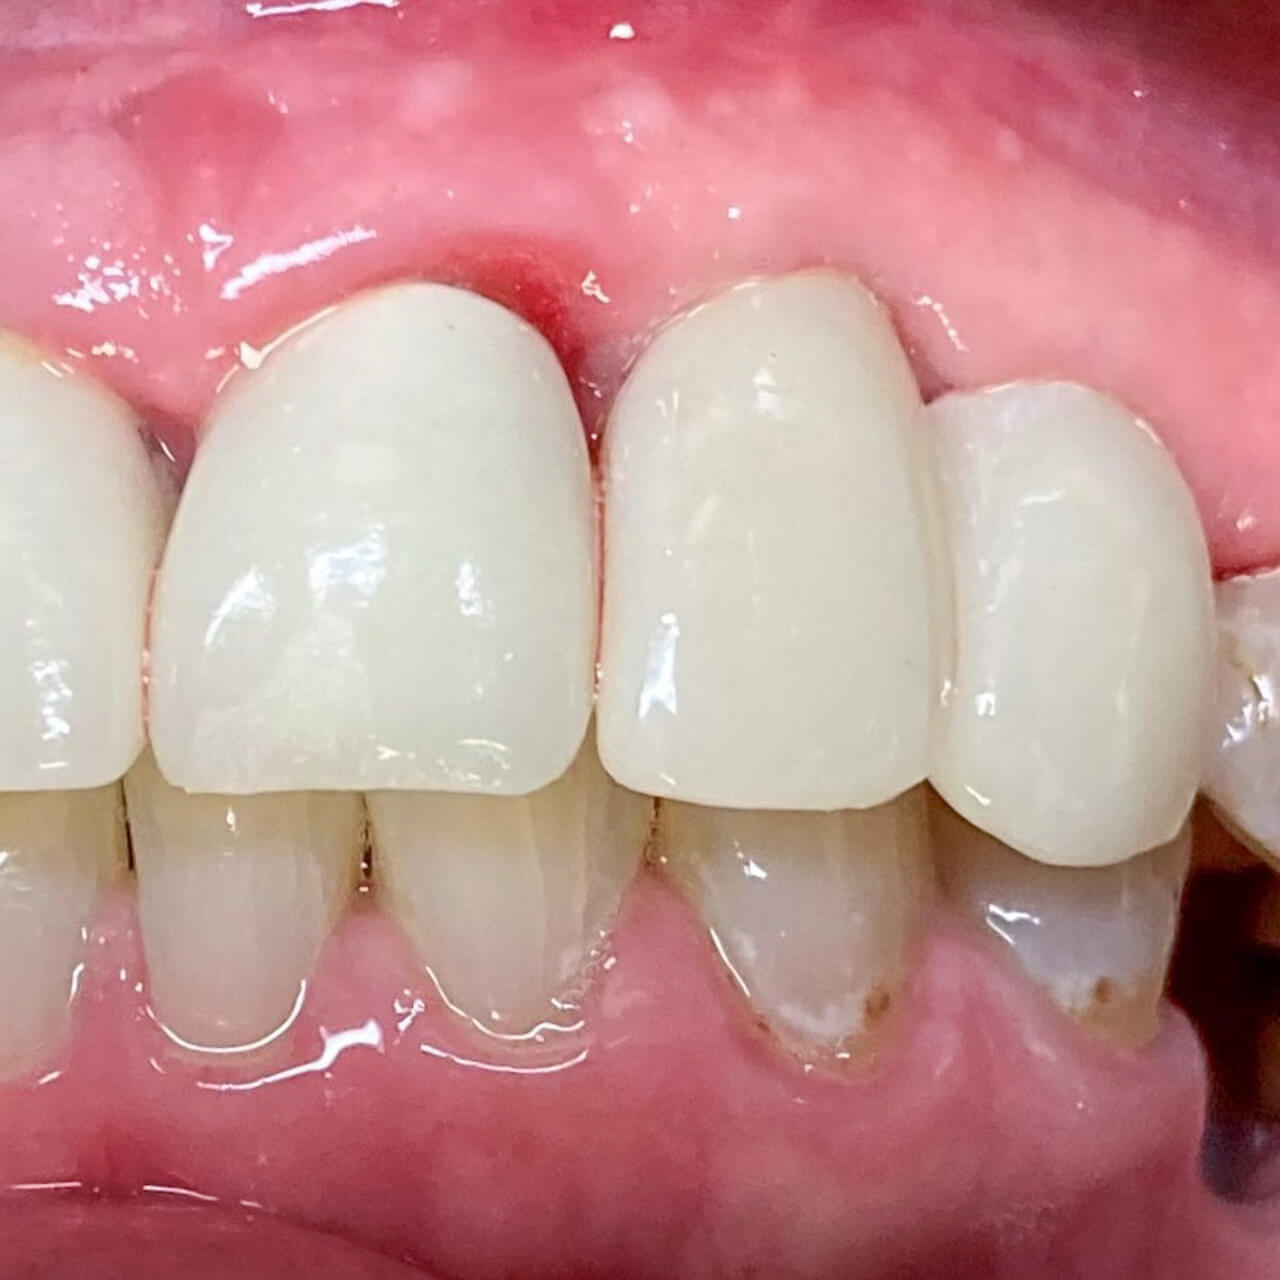 A new implant crown for a patient